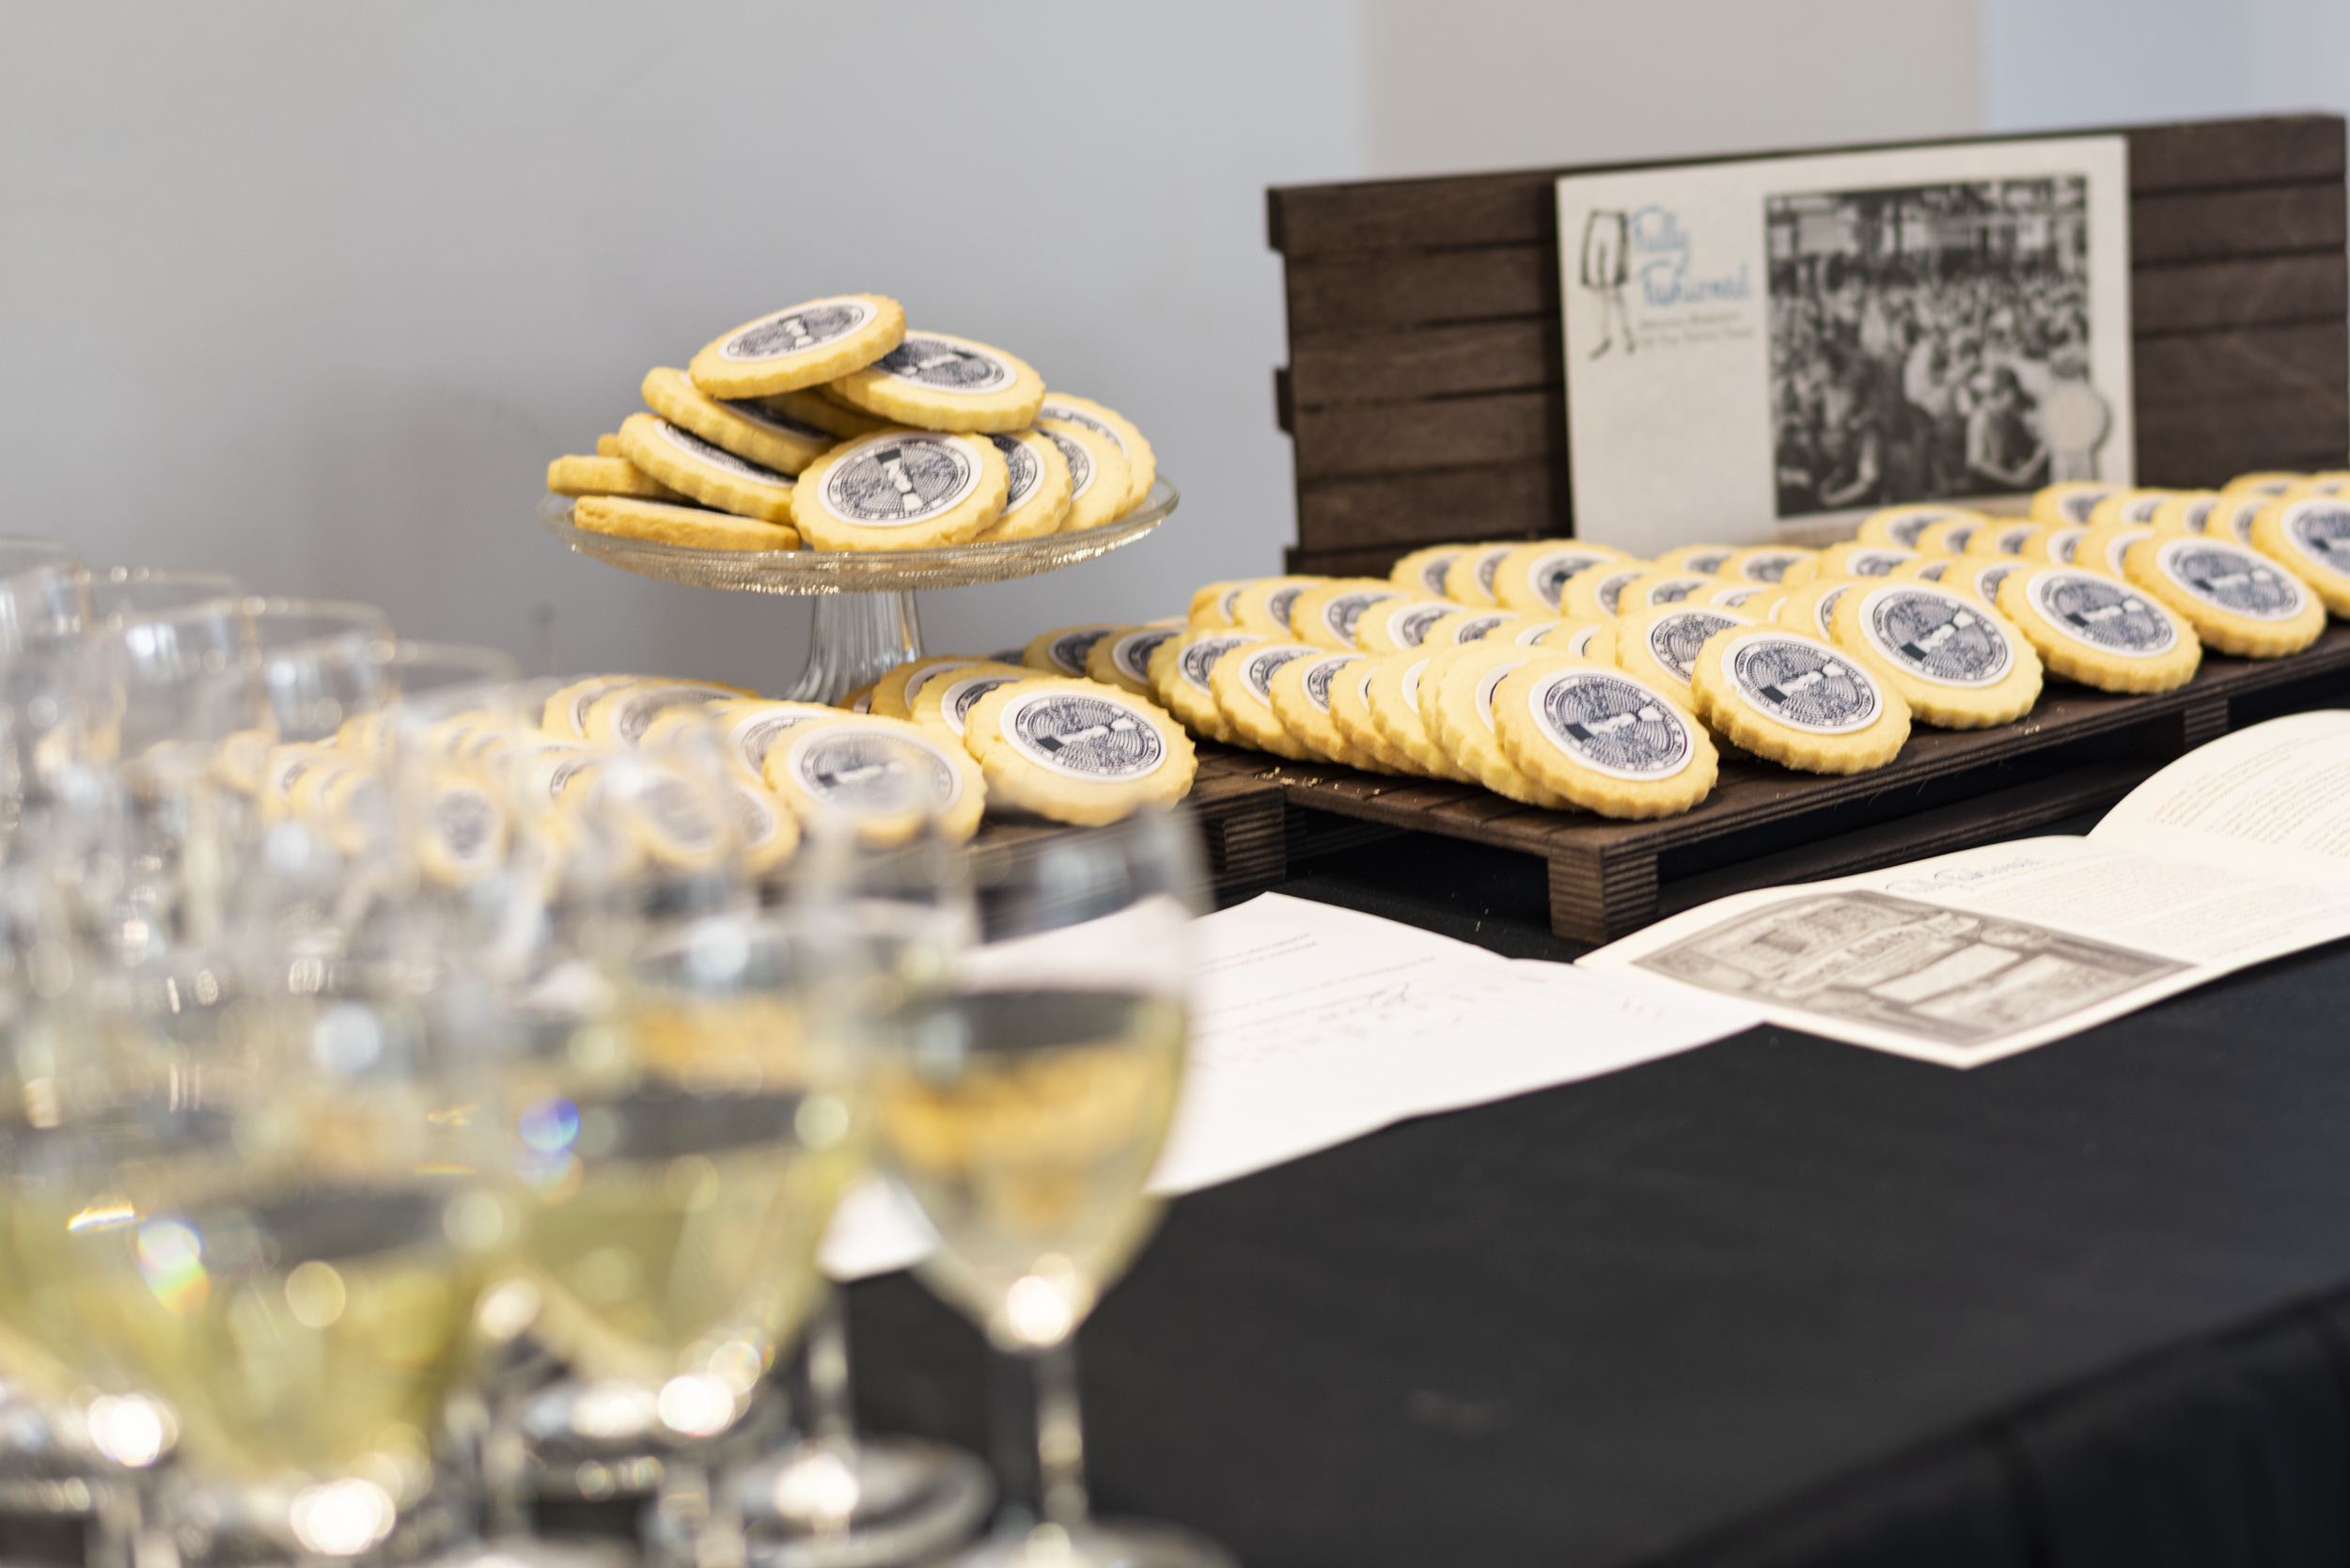 Biscuits with the logo of the Lace Makers' Society